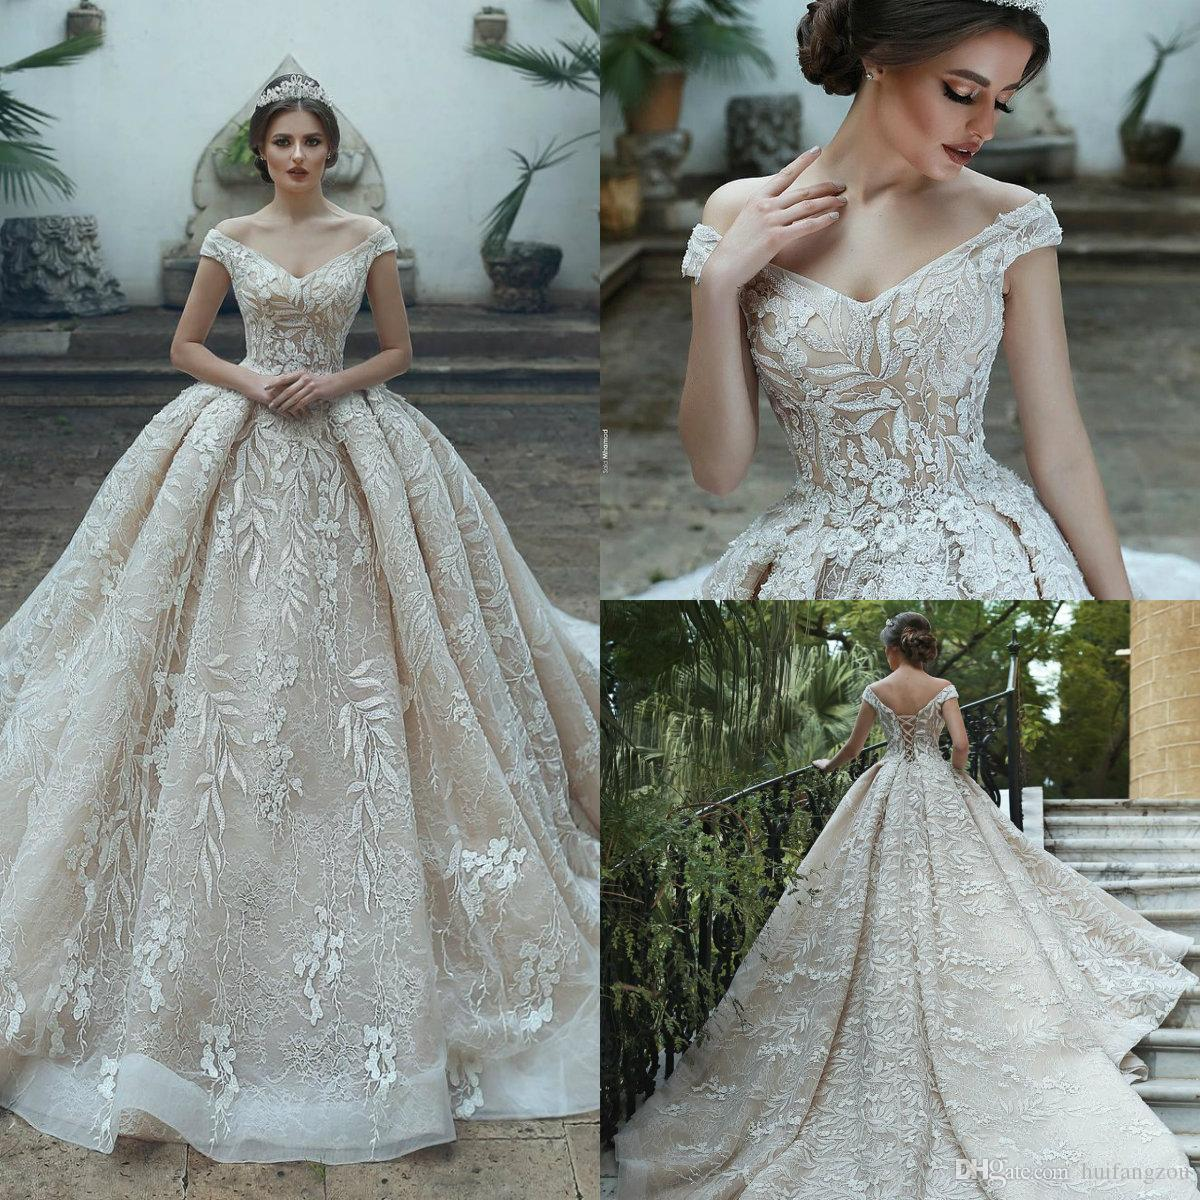 Discount 2019 Vintage Plus Size Wedding Dresses Off Shoulder ...